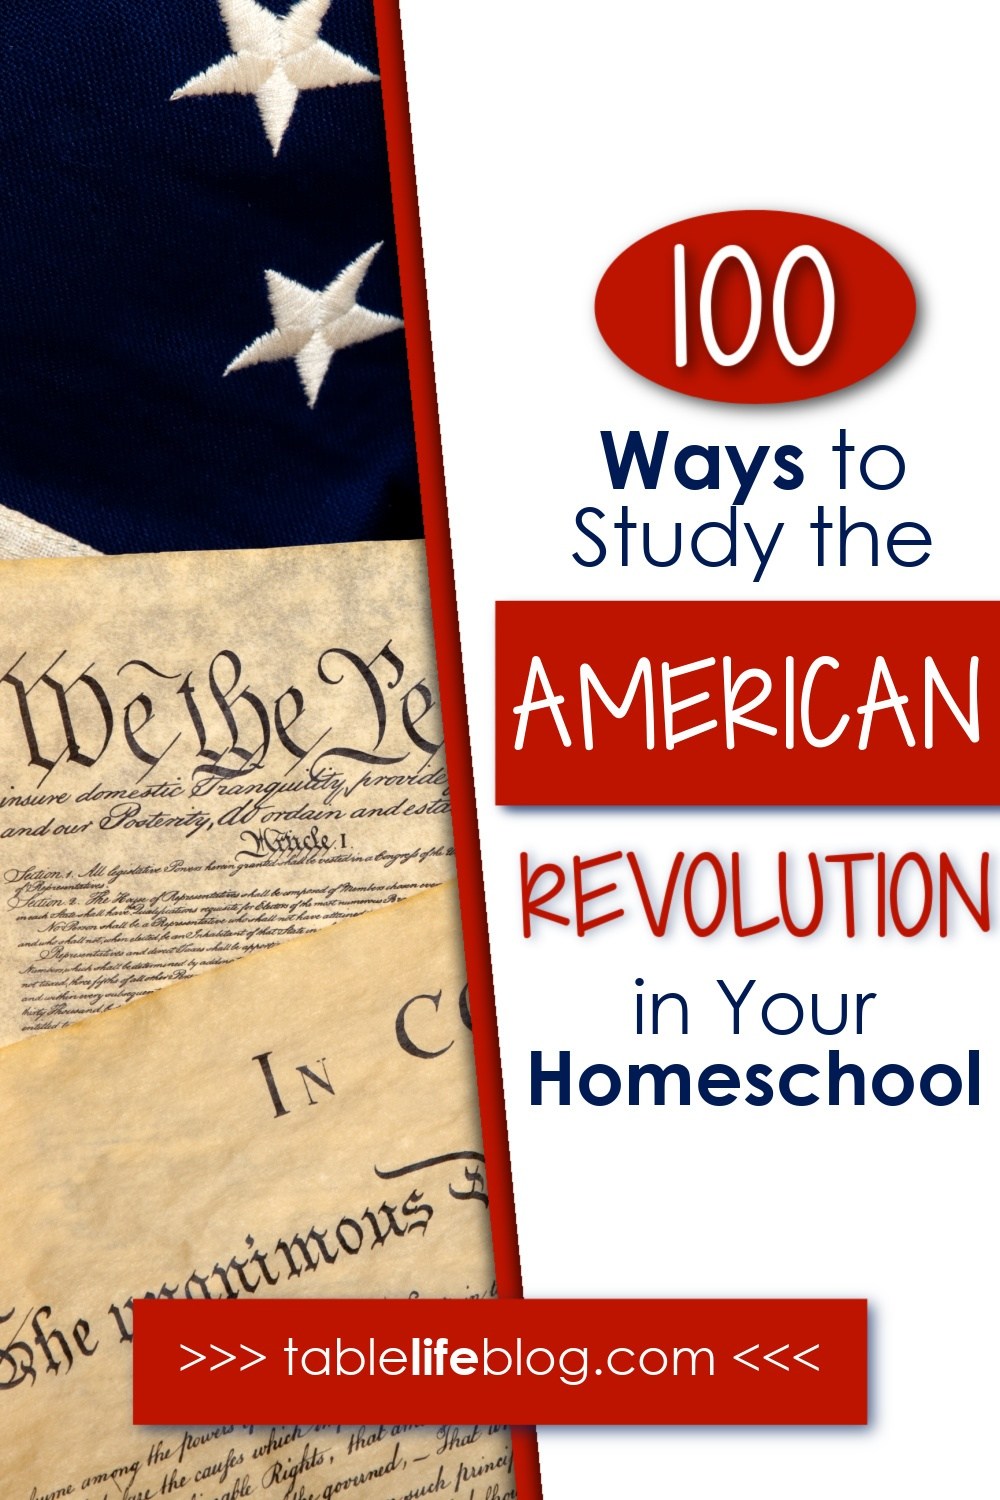 Planning to cover the American Revolution in your homeschool? We've got a great list of 100 resources to make it happen.